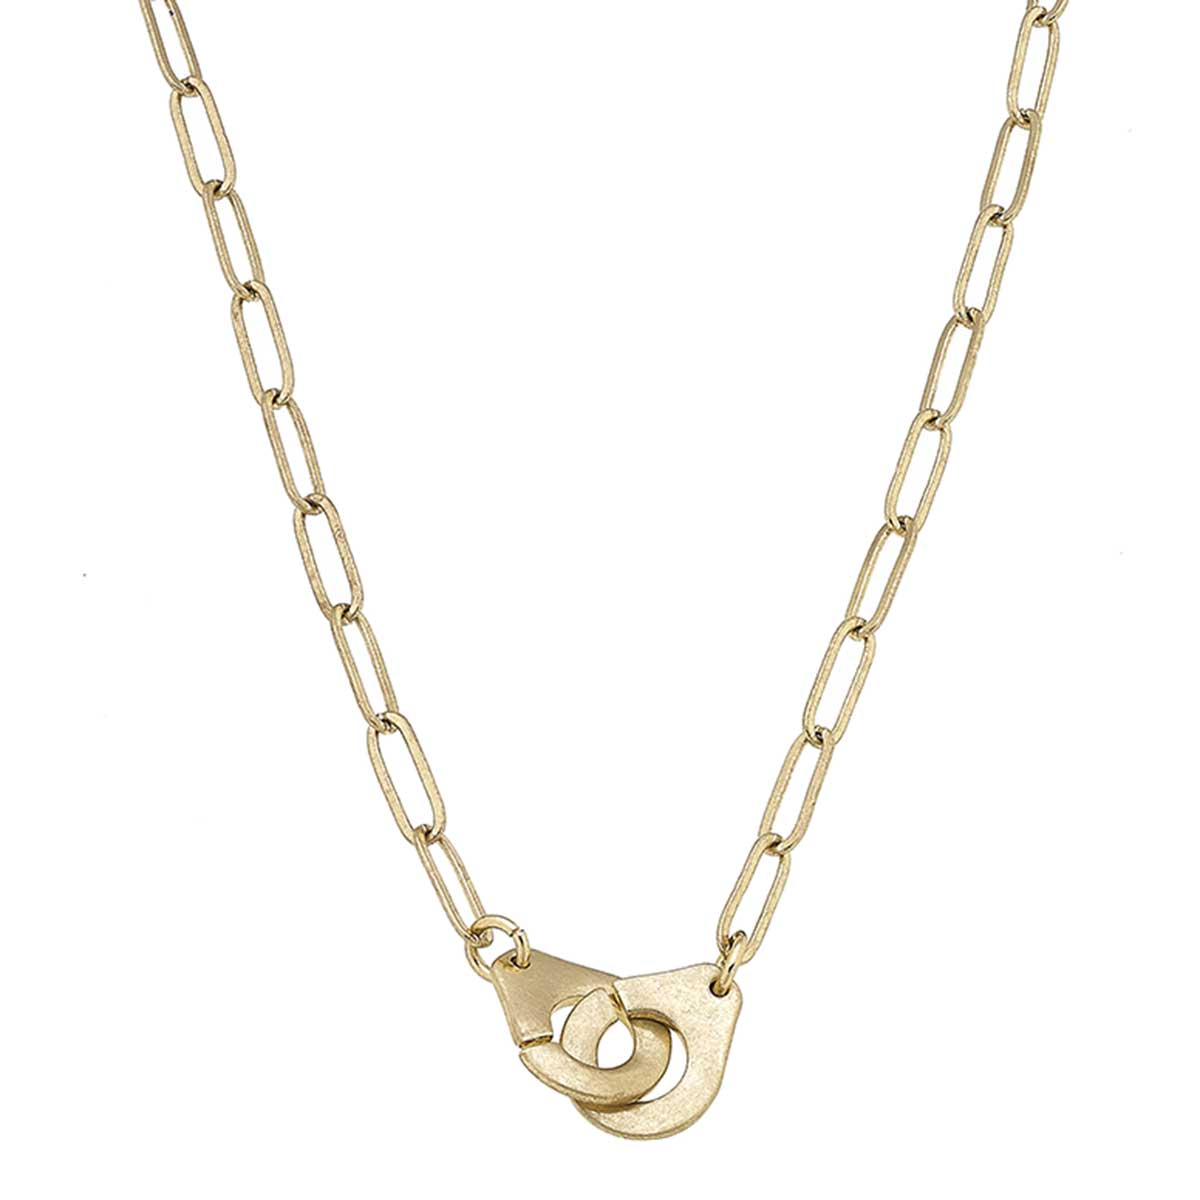 Londyn Handcuff Paperclip Chain T-Bar Necklace in Worn Gold